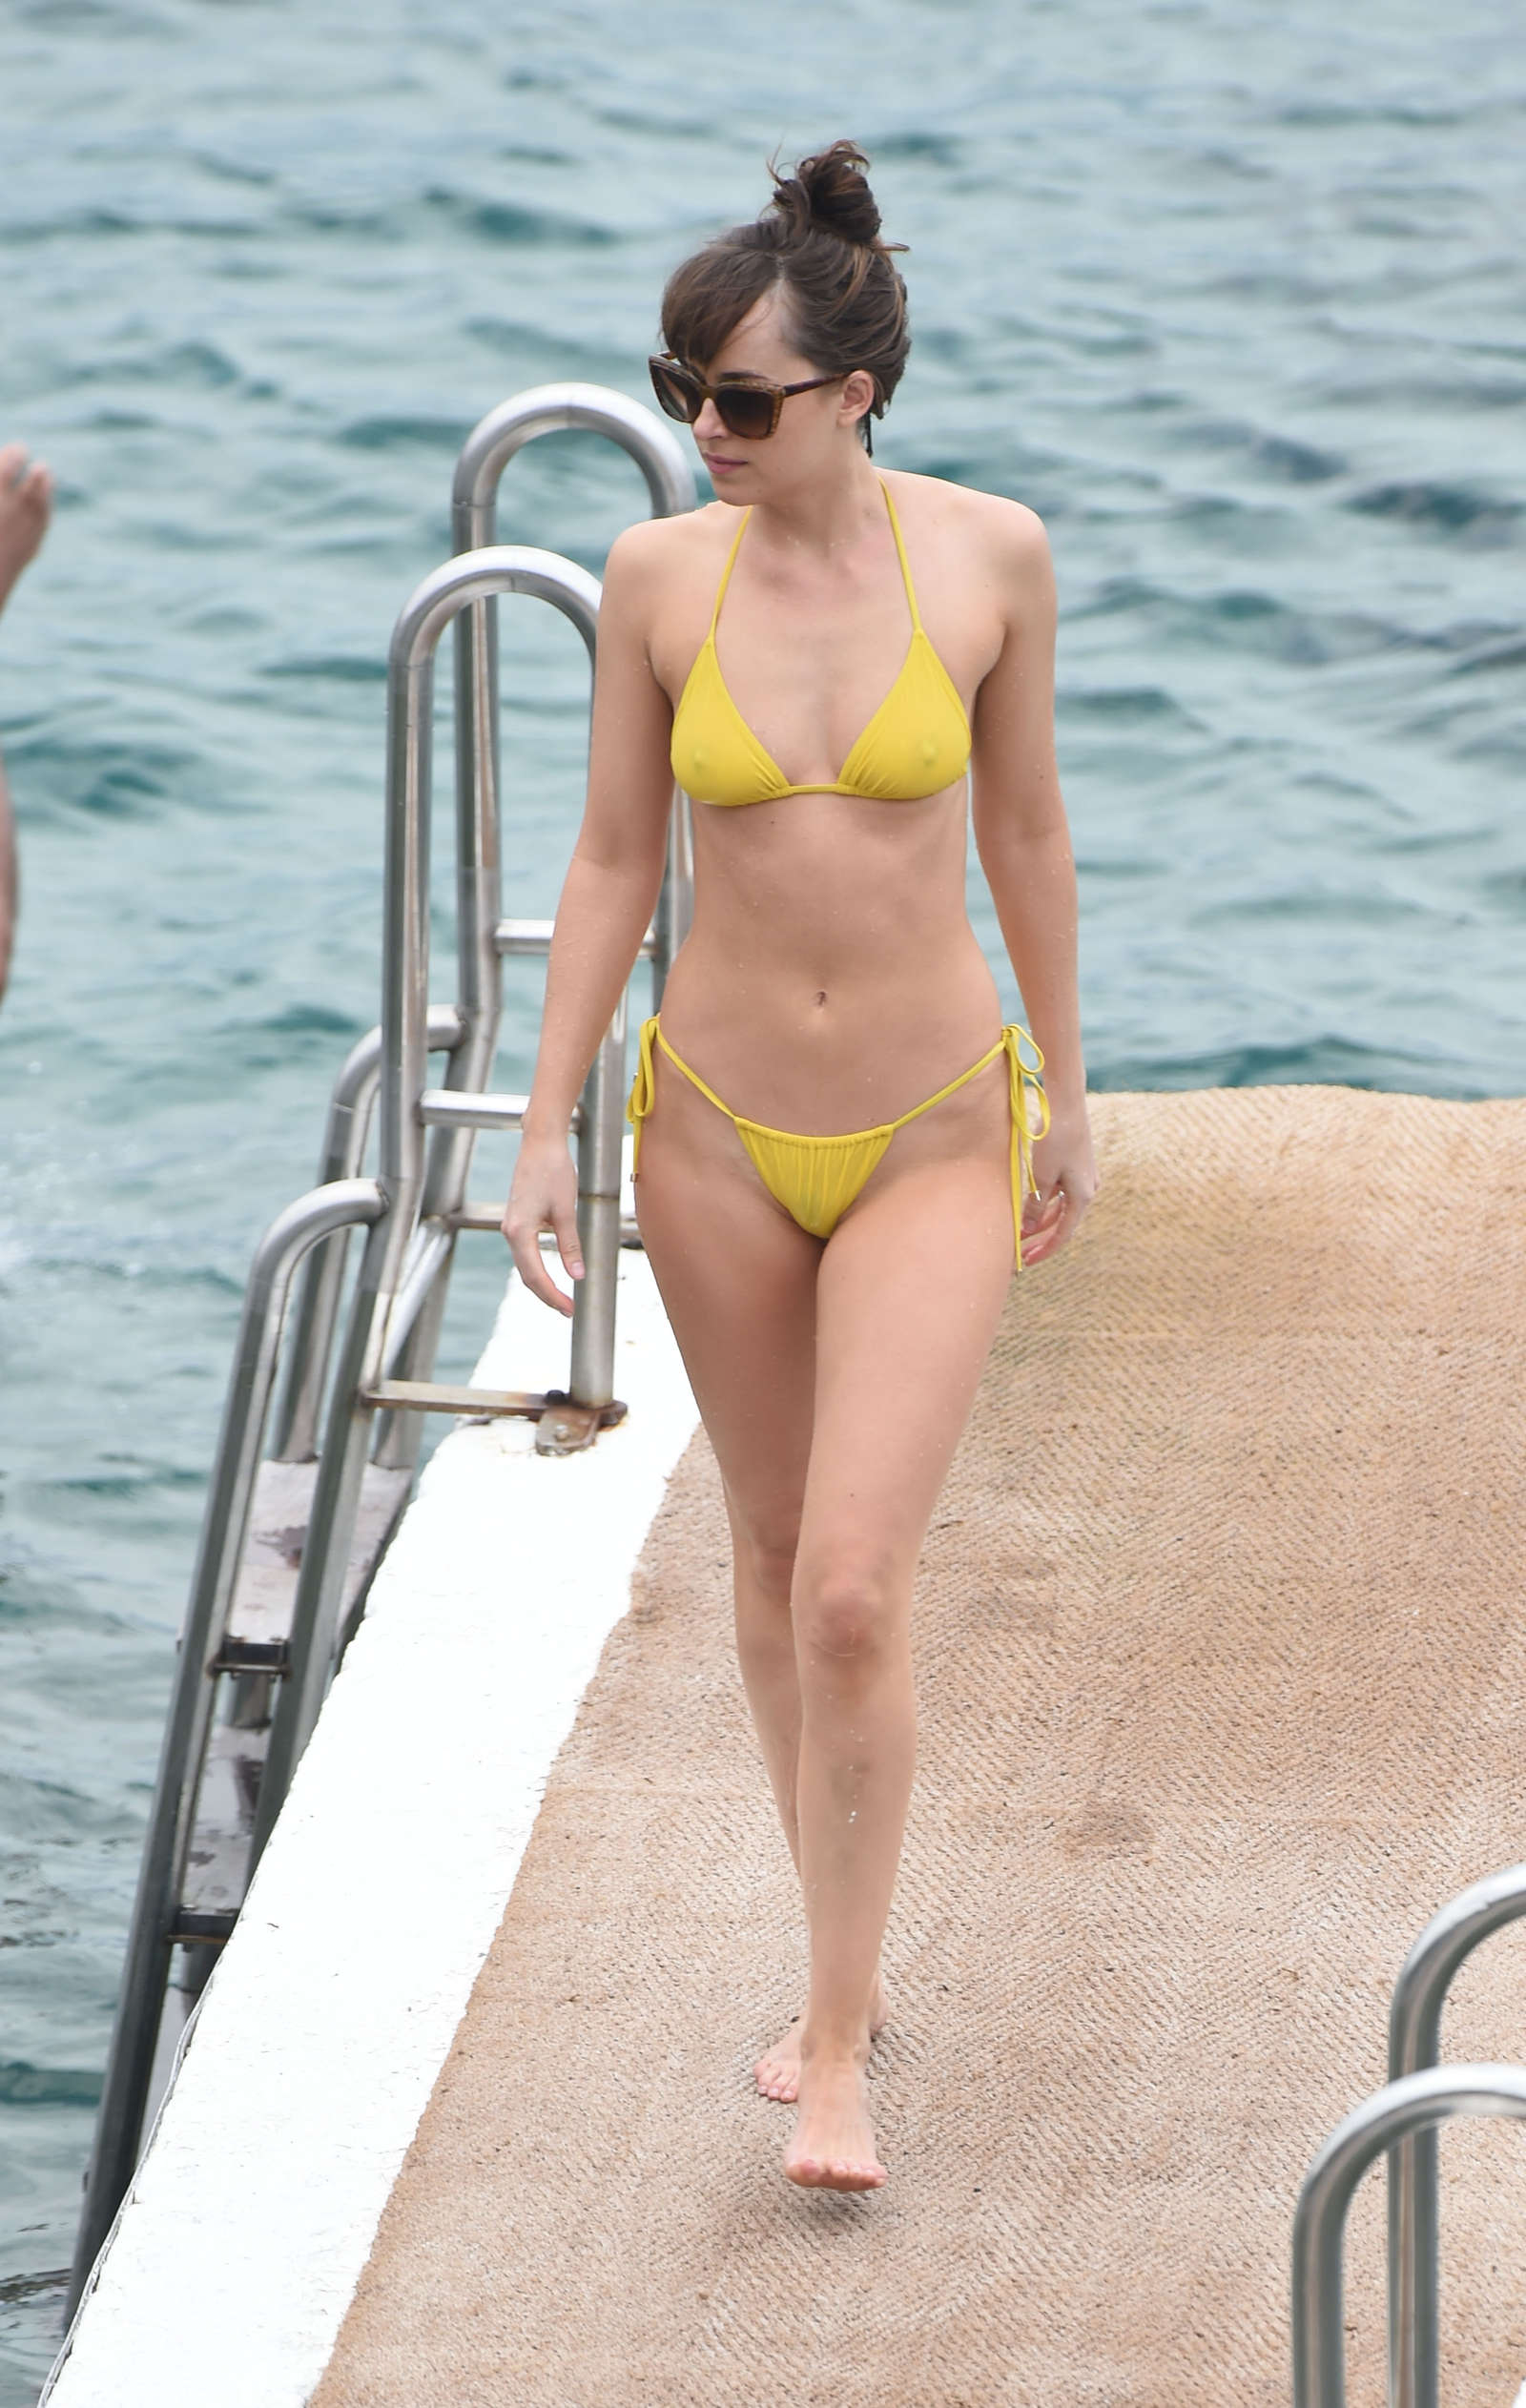 Dakota Johnson 2016 : Dakota Johnson in Yellow Bikini 2016 -35